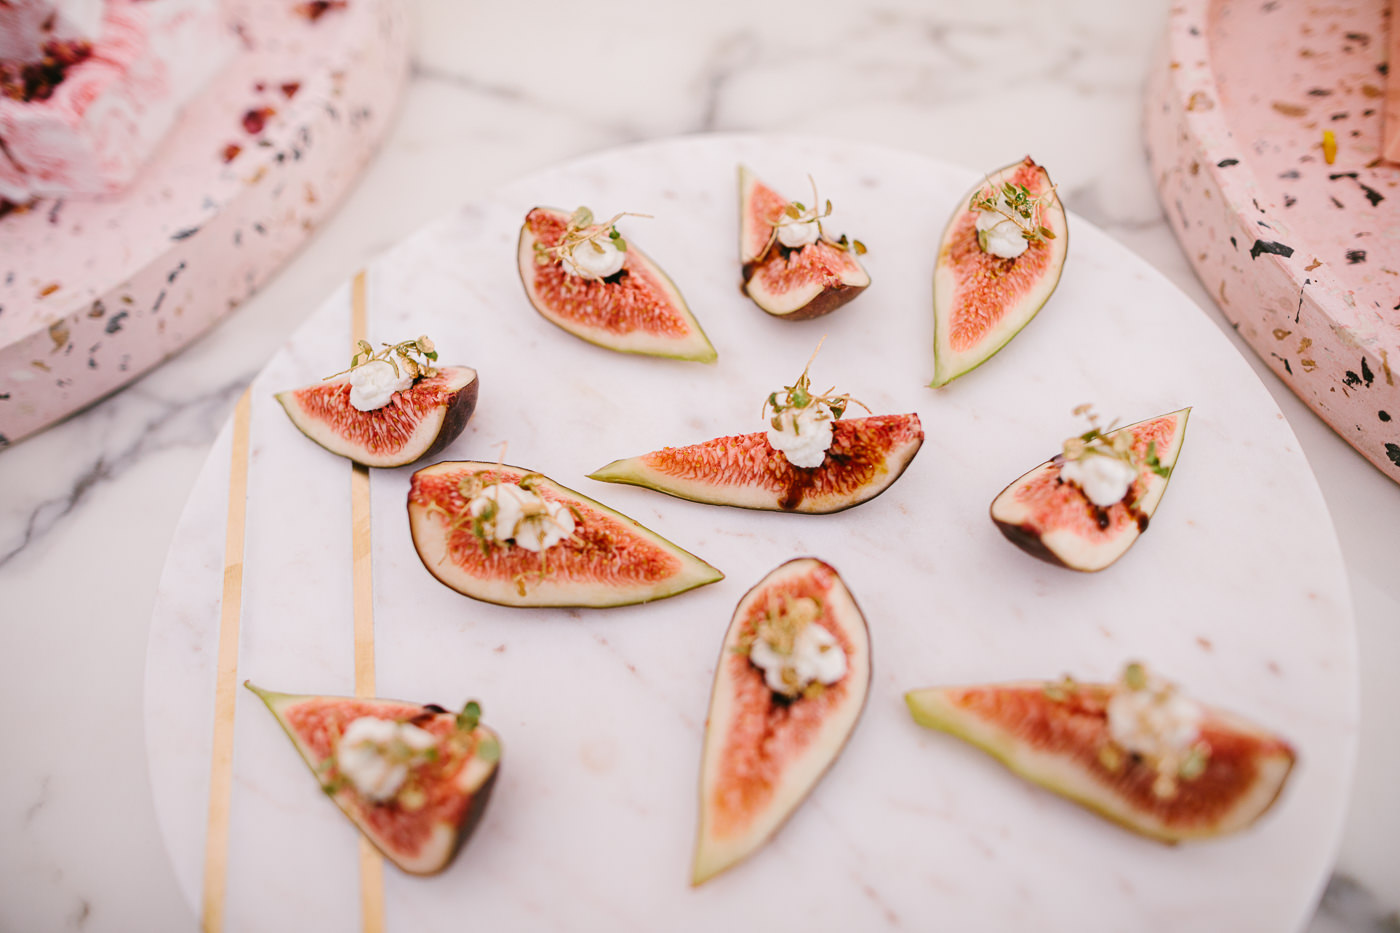 luxury snacks in the birdcage - food style